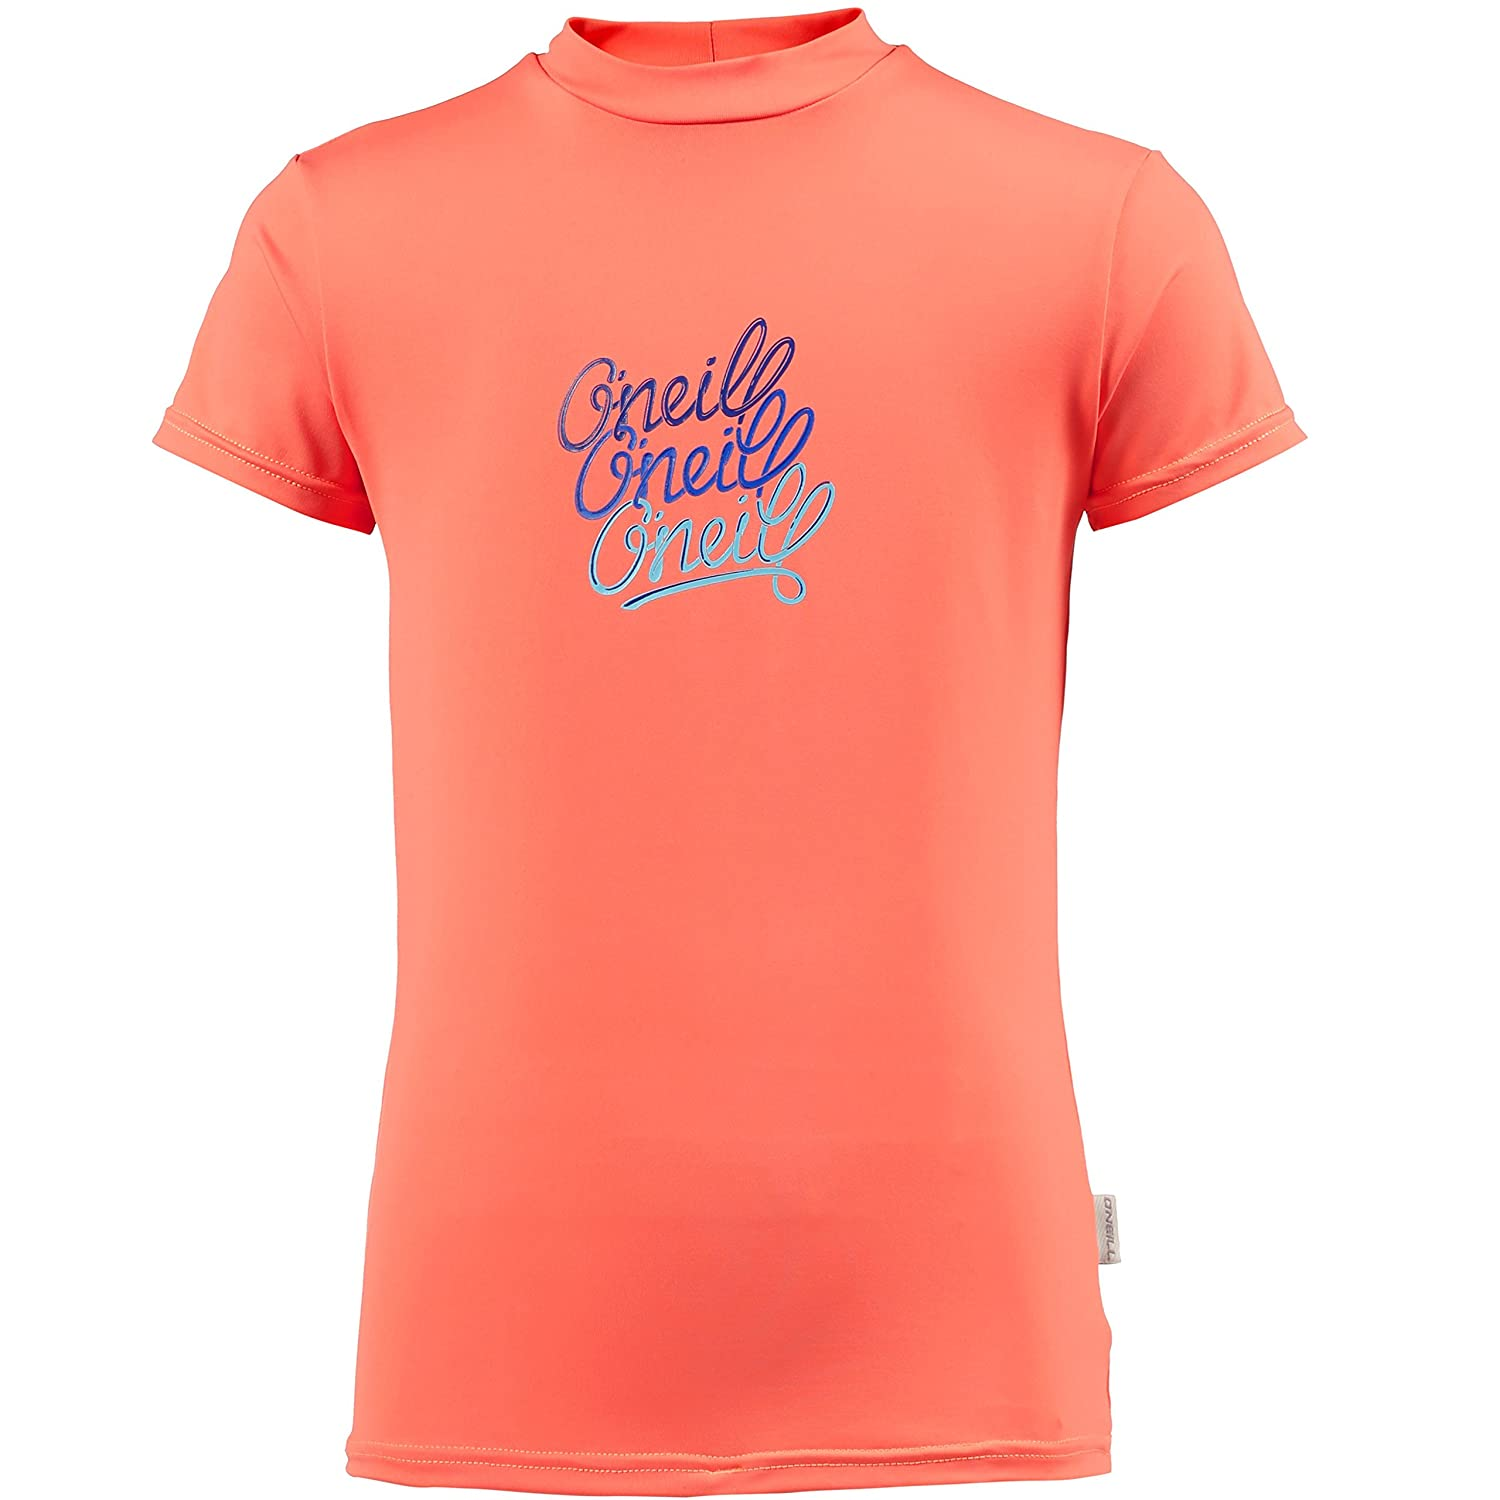 ONeill Youth Kids Junior Girls Short Sleeve Rash T-Shirt Tee T Shirt Top Coral Punch UV Sun Protection and SPF Properties